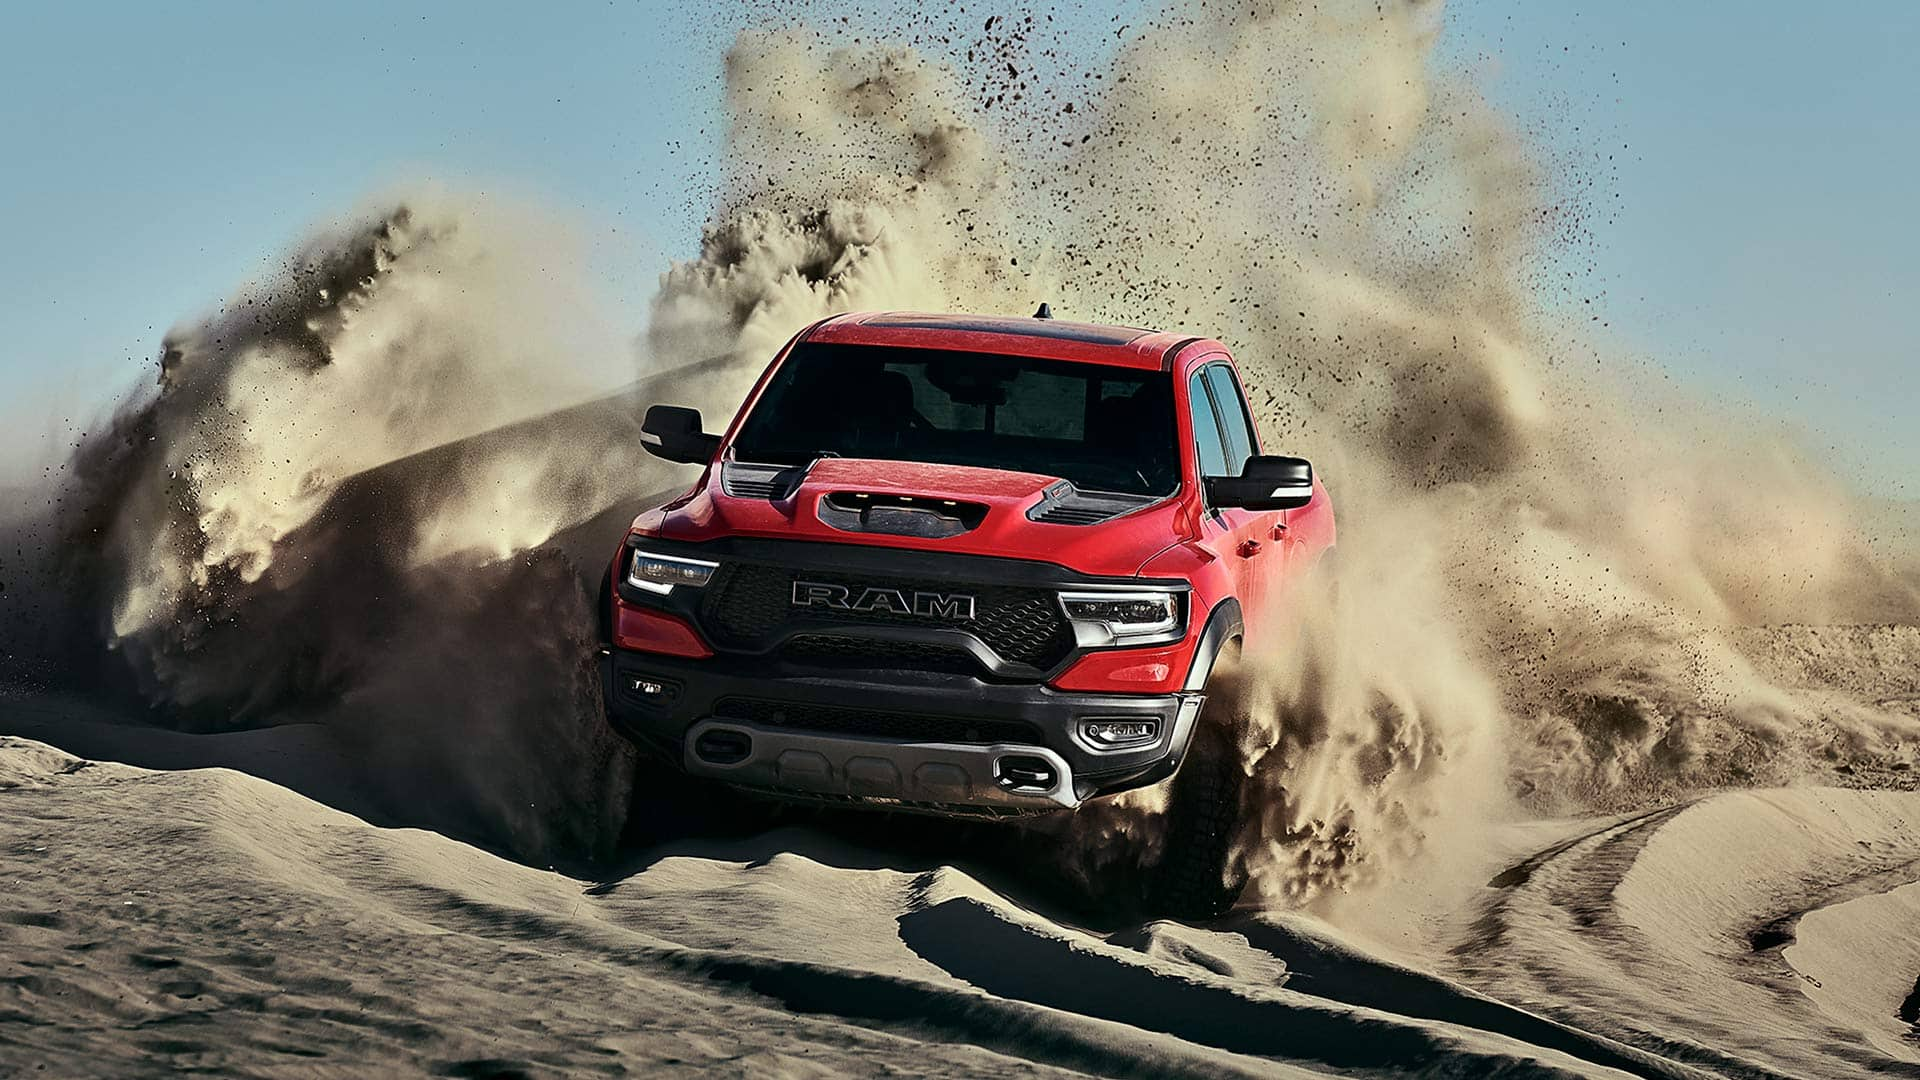 The 2021 Ram 1500 TRX being driven over a sand dune, churning up a large dust cloud.